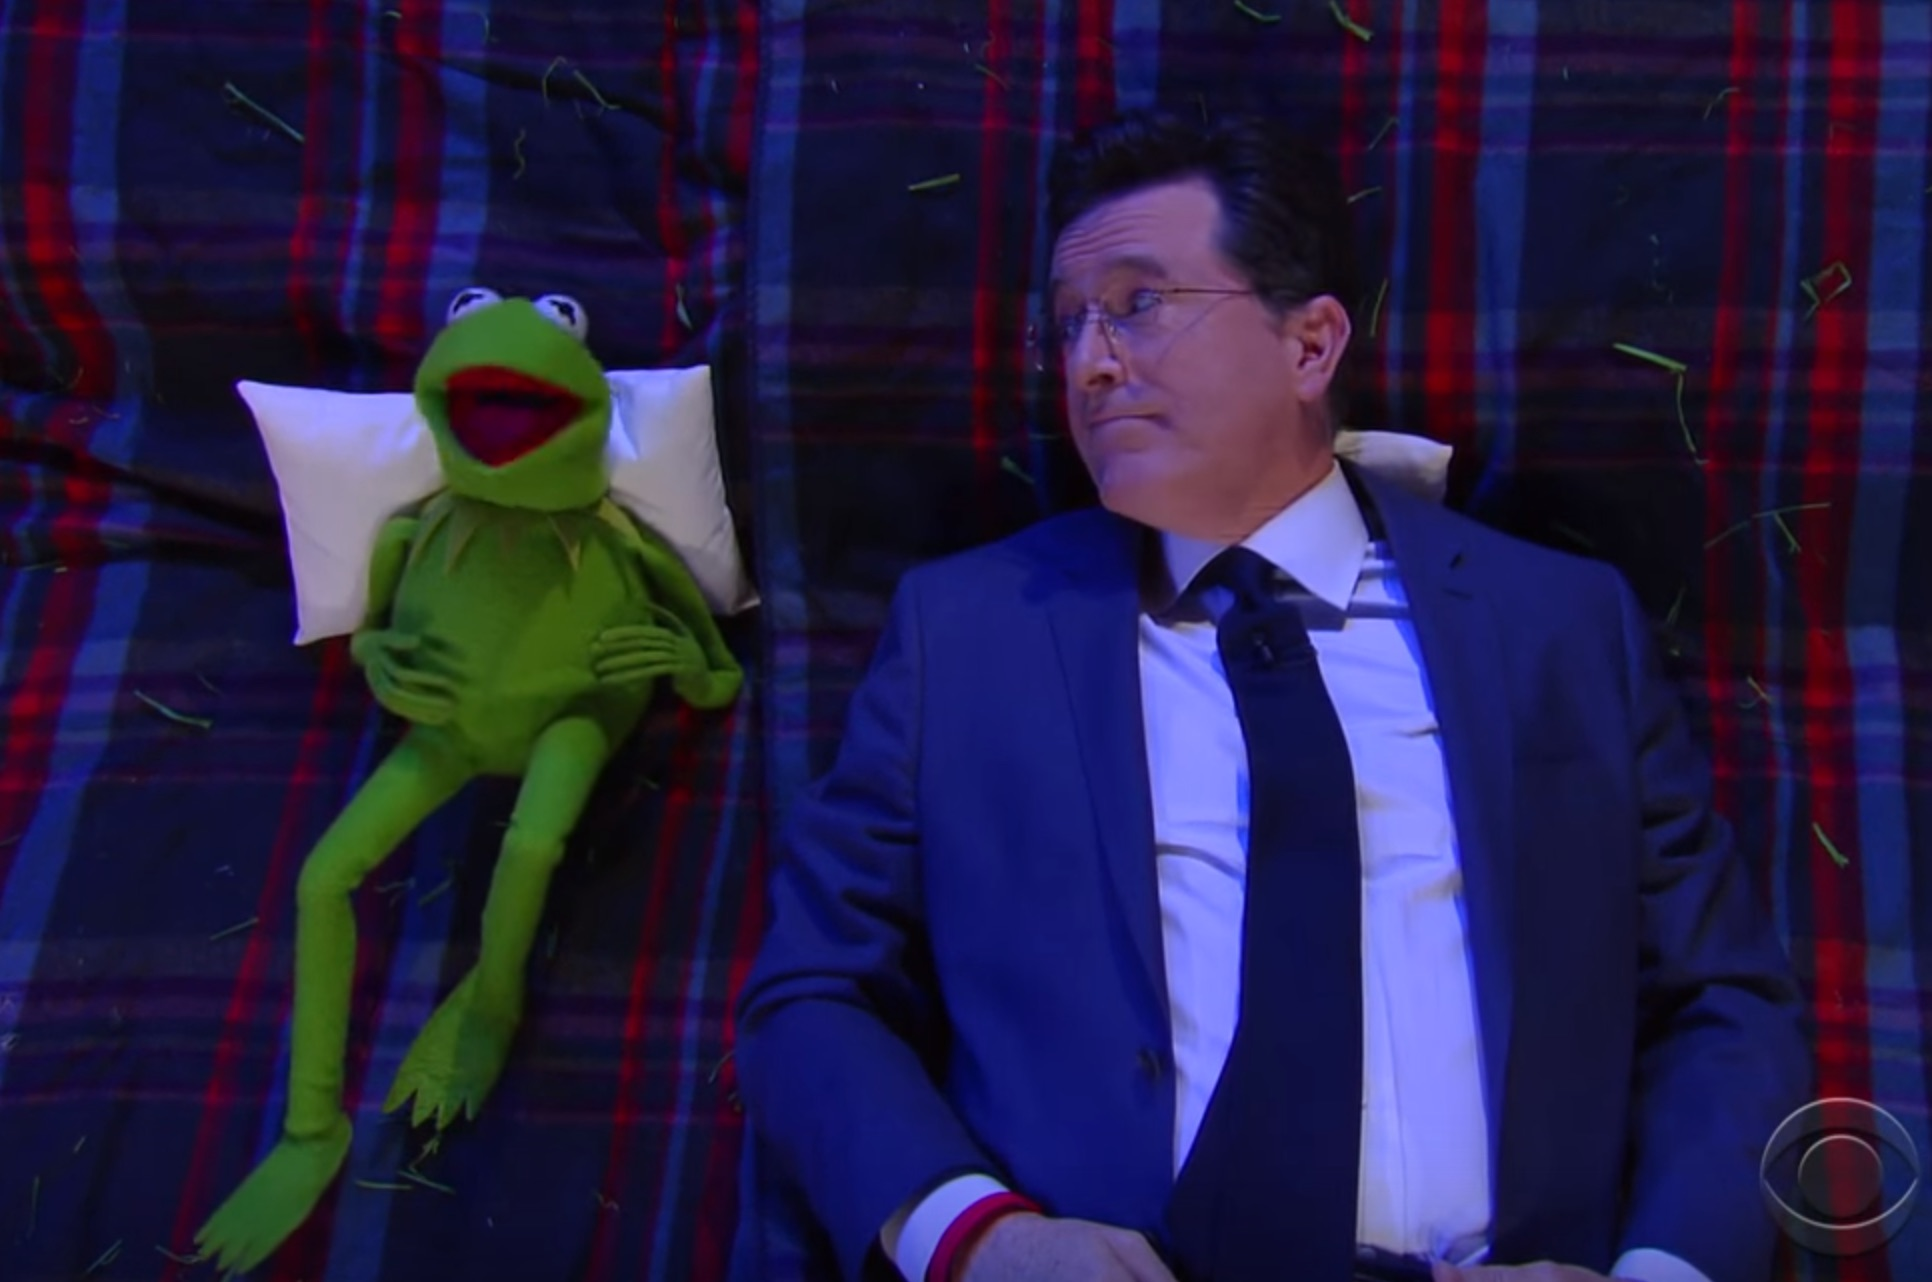 Stephen Colbert and Kermit the Frog ask each other life's biggest questions